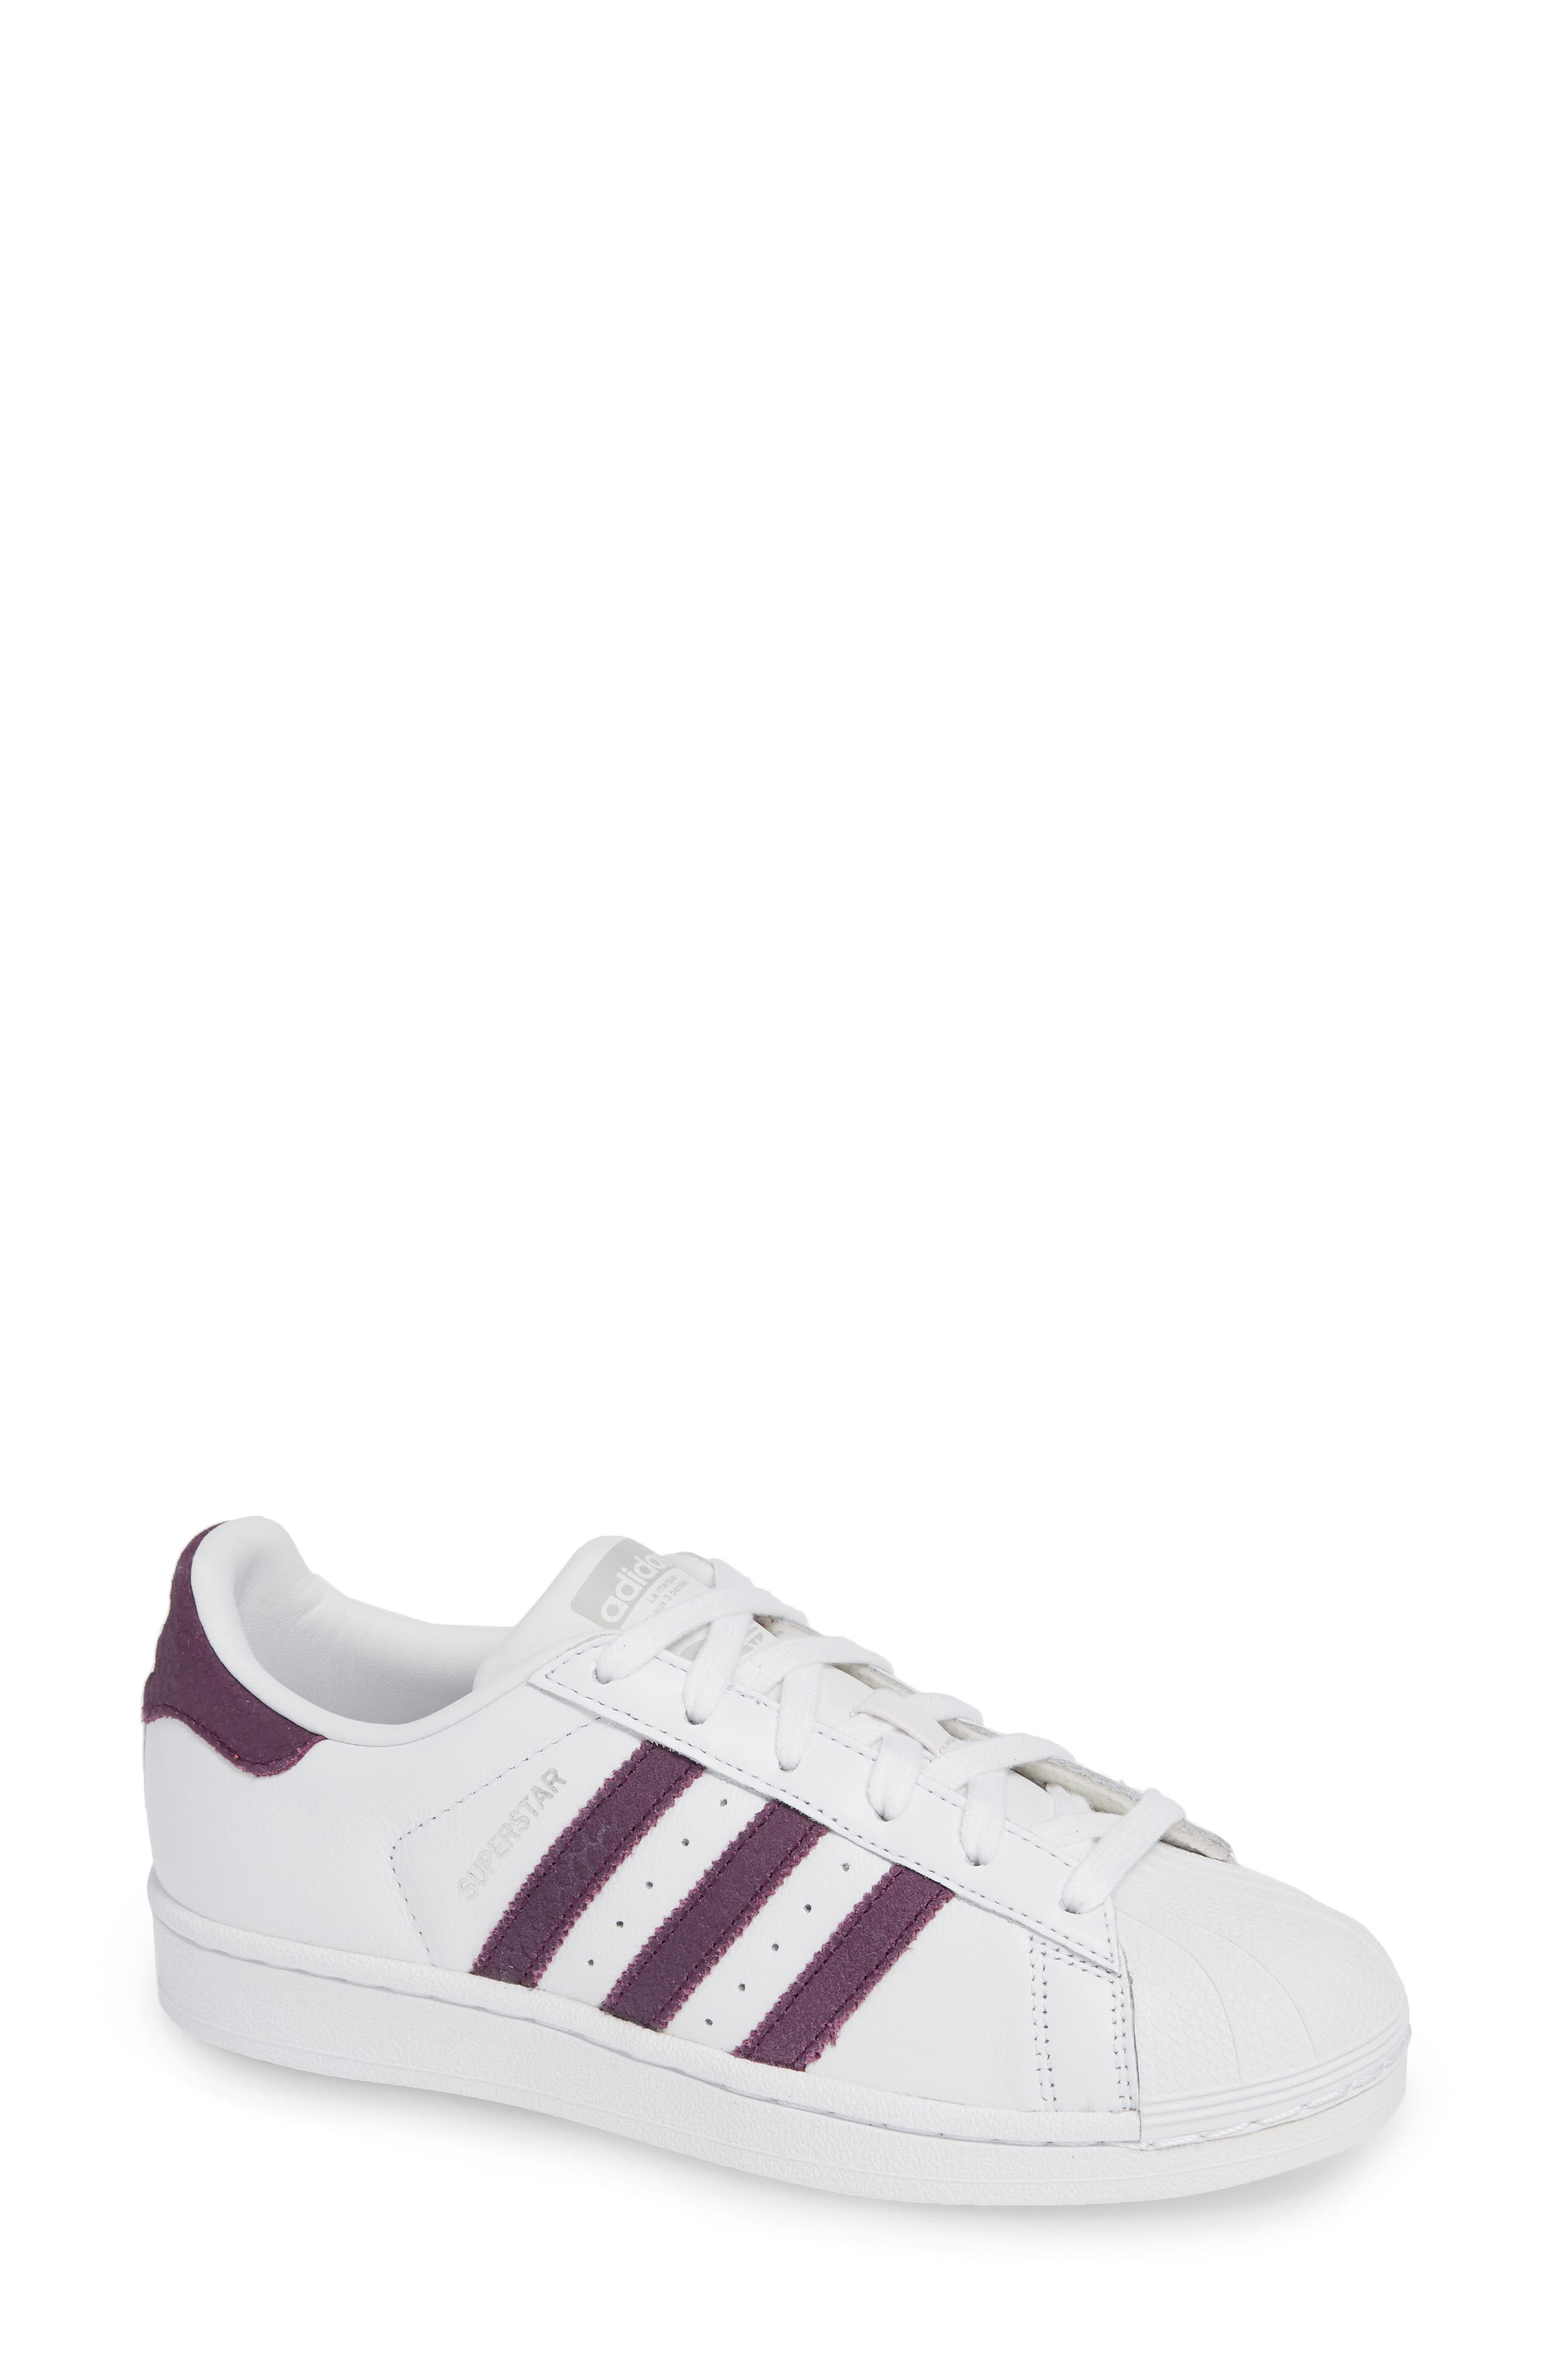 Superstar Sneaker,                             Main thumbnail 1, color,                             127